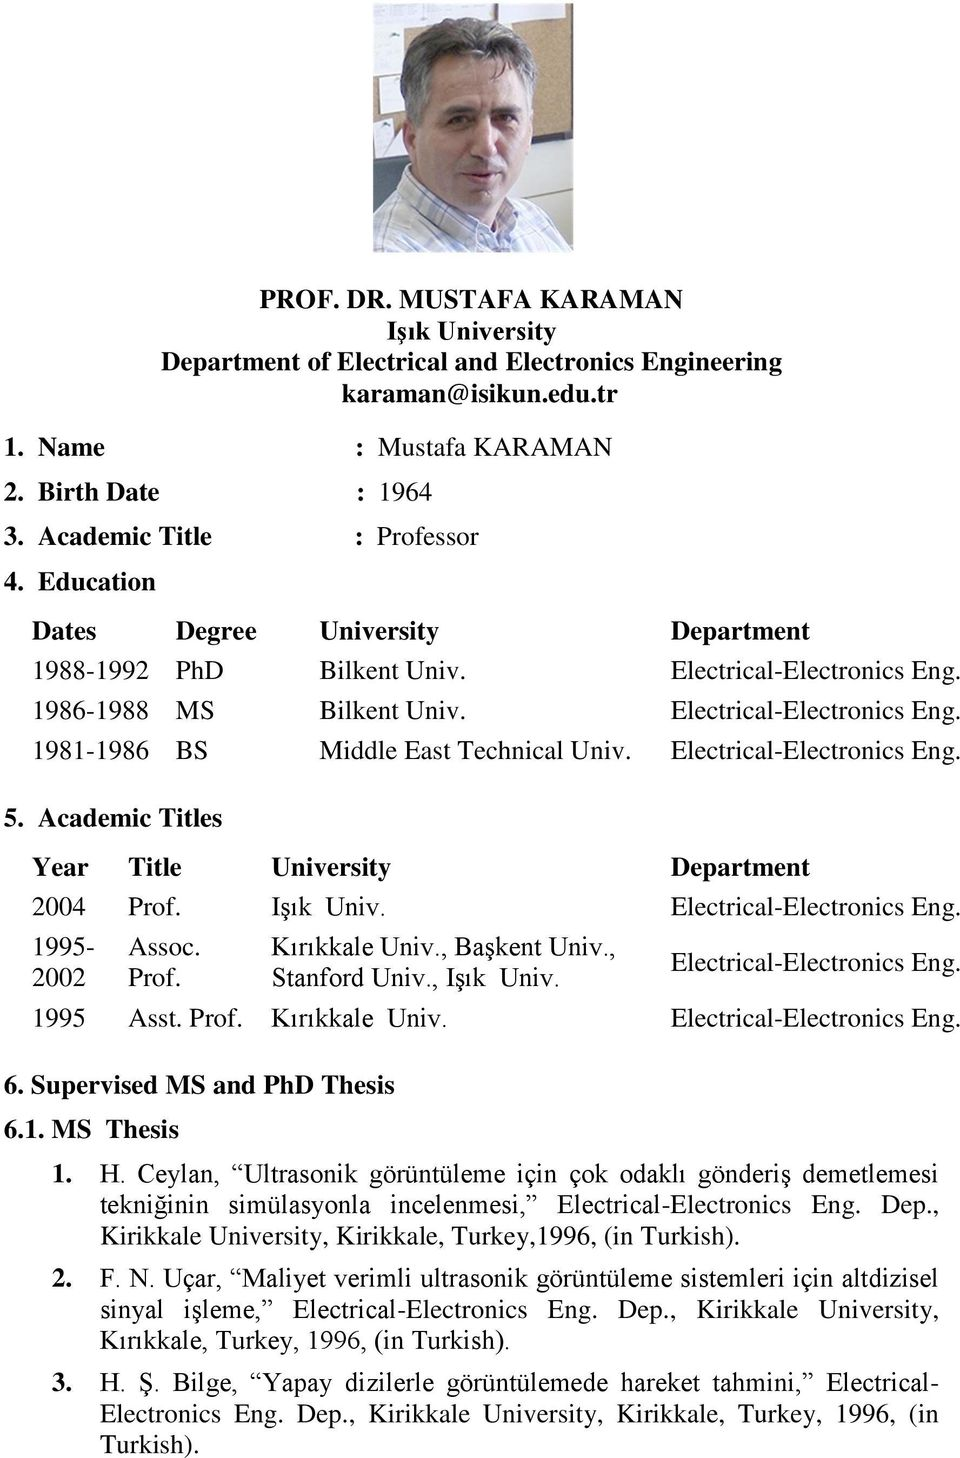 Electrical-Electronics Eng. 5. Academic Titles Year Title University Department 2004 Prof. Işık Univ. Electrical-Electronics Eng. 1995-2002 Assoc. Prof. Kırıkkale Univ., Başkent Univ., Stanford Univ.